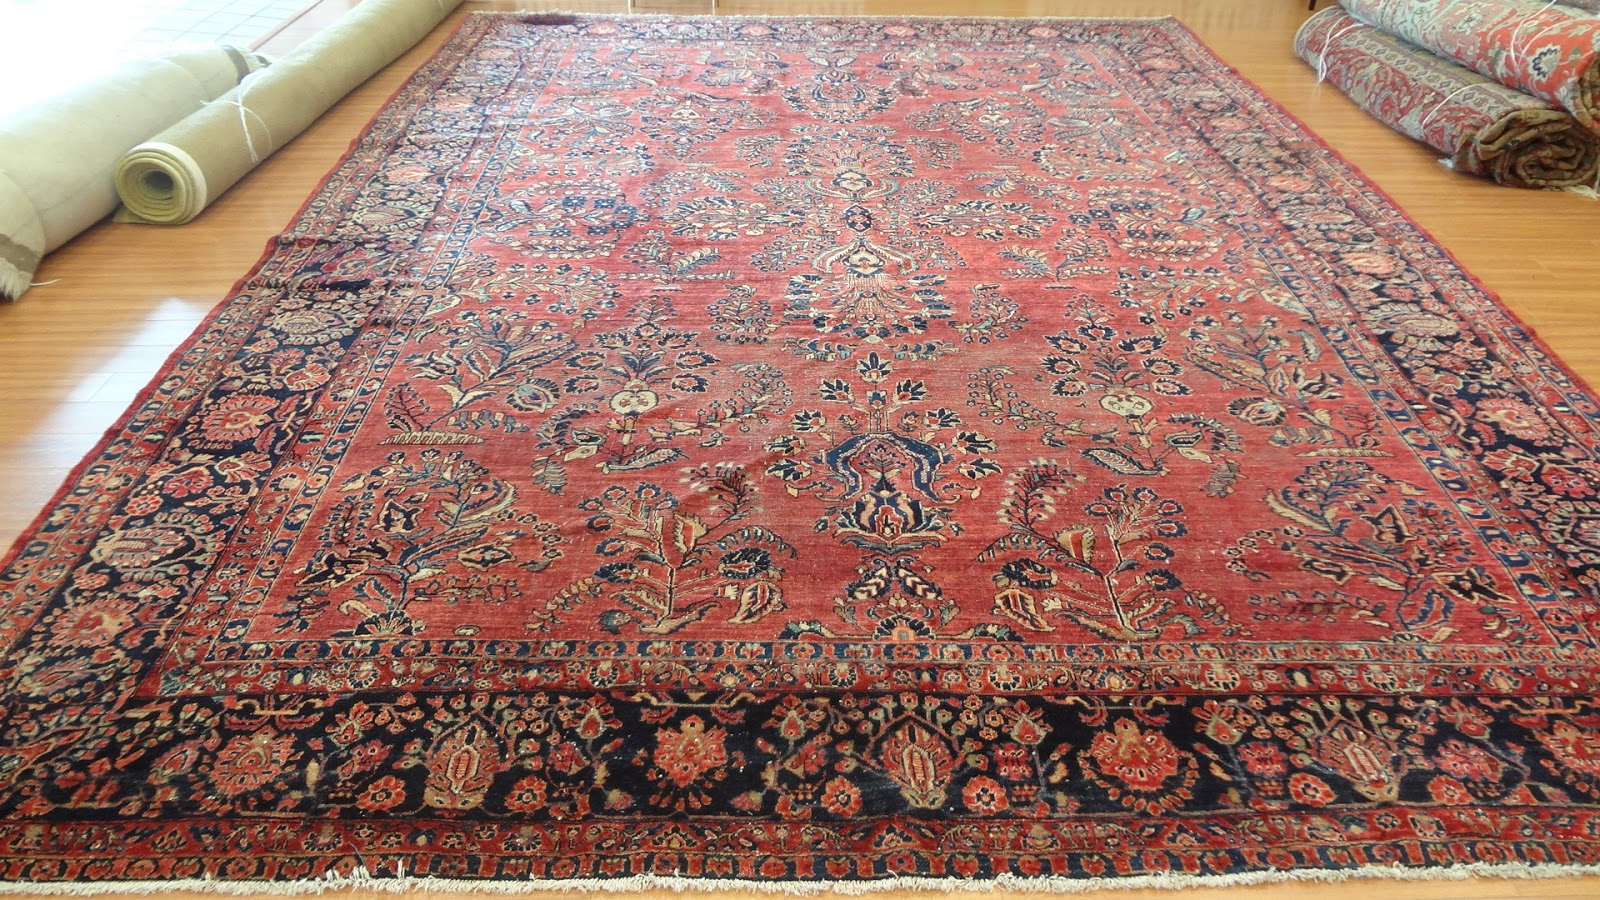 acroos for dubaiinteriors dhabi dubai get ae oriental uae sale buy in carpet rugs handmade abu persian carpets best rug